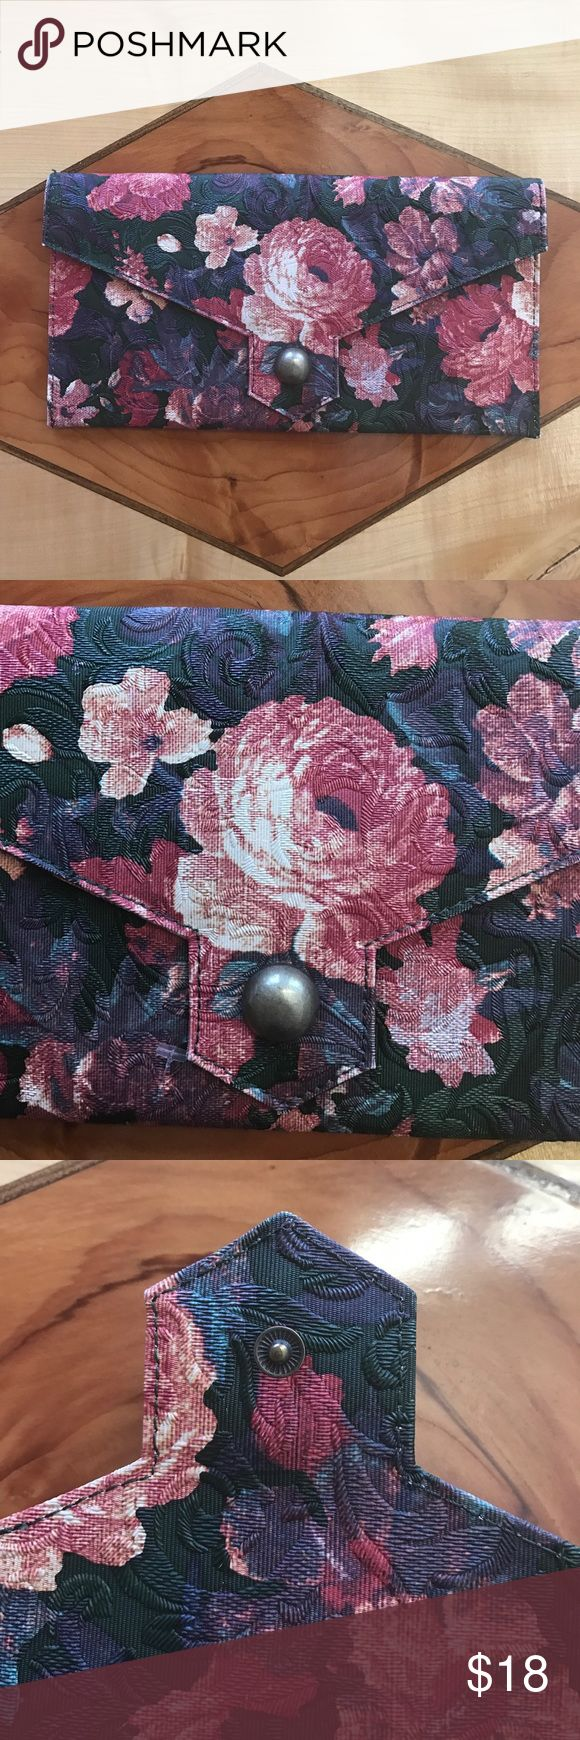 """Urban Outfitters Kimchi Blue Floral Clutch Floral clutch with brass button, magnetic closure. Inside zip pocket. Excellent used condition. 11.5"""" by 6"""" Urban Outfitters Bags Clutches & Wristlets"""